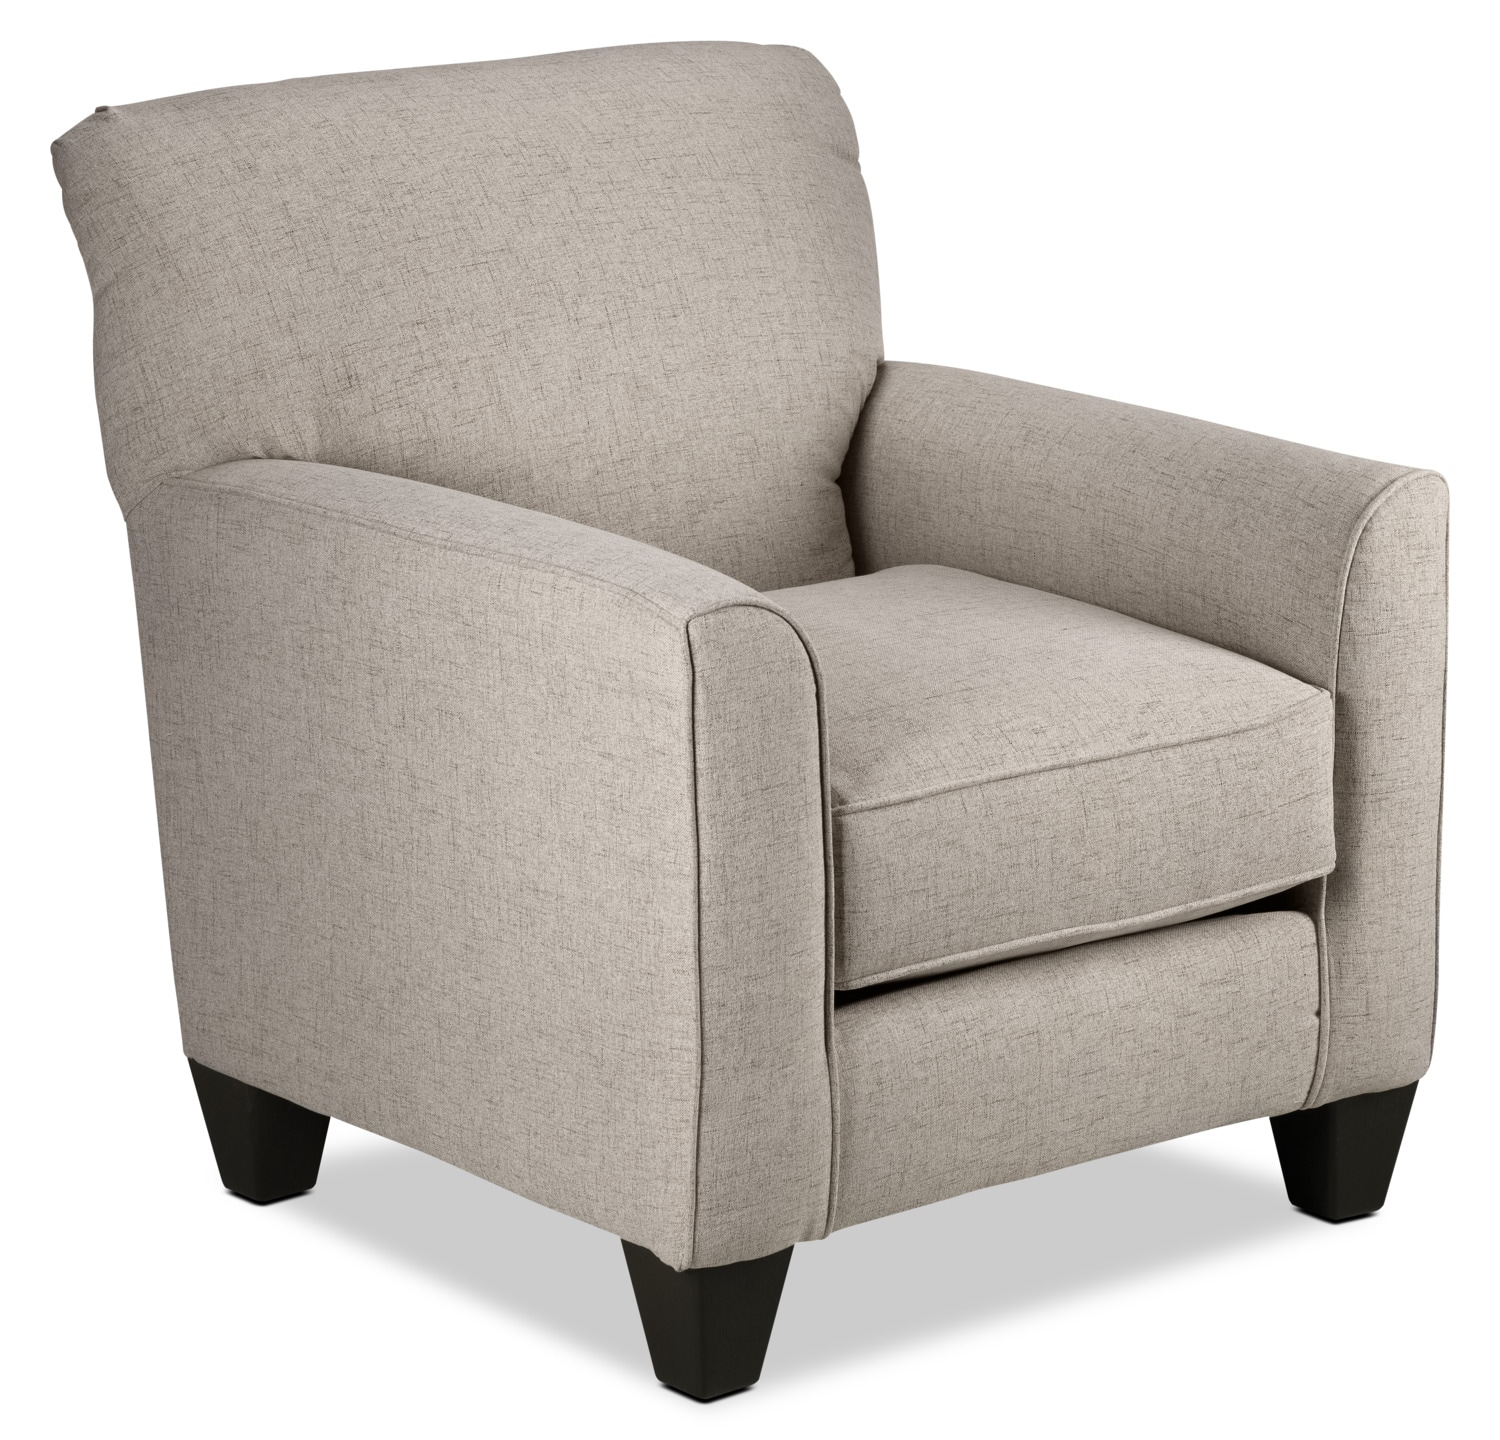 Accent chairs leon 39 s for Accent furniture